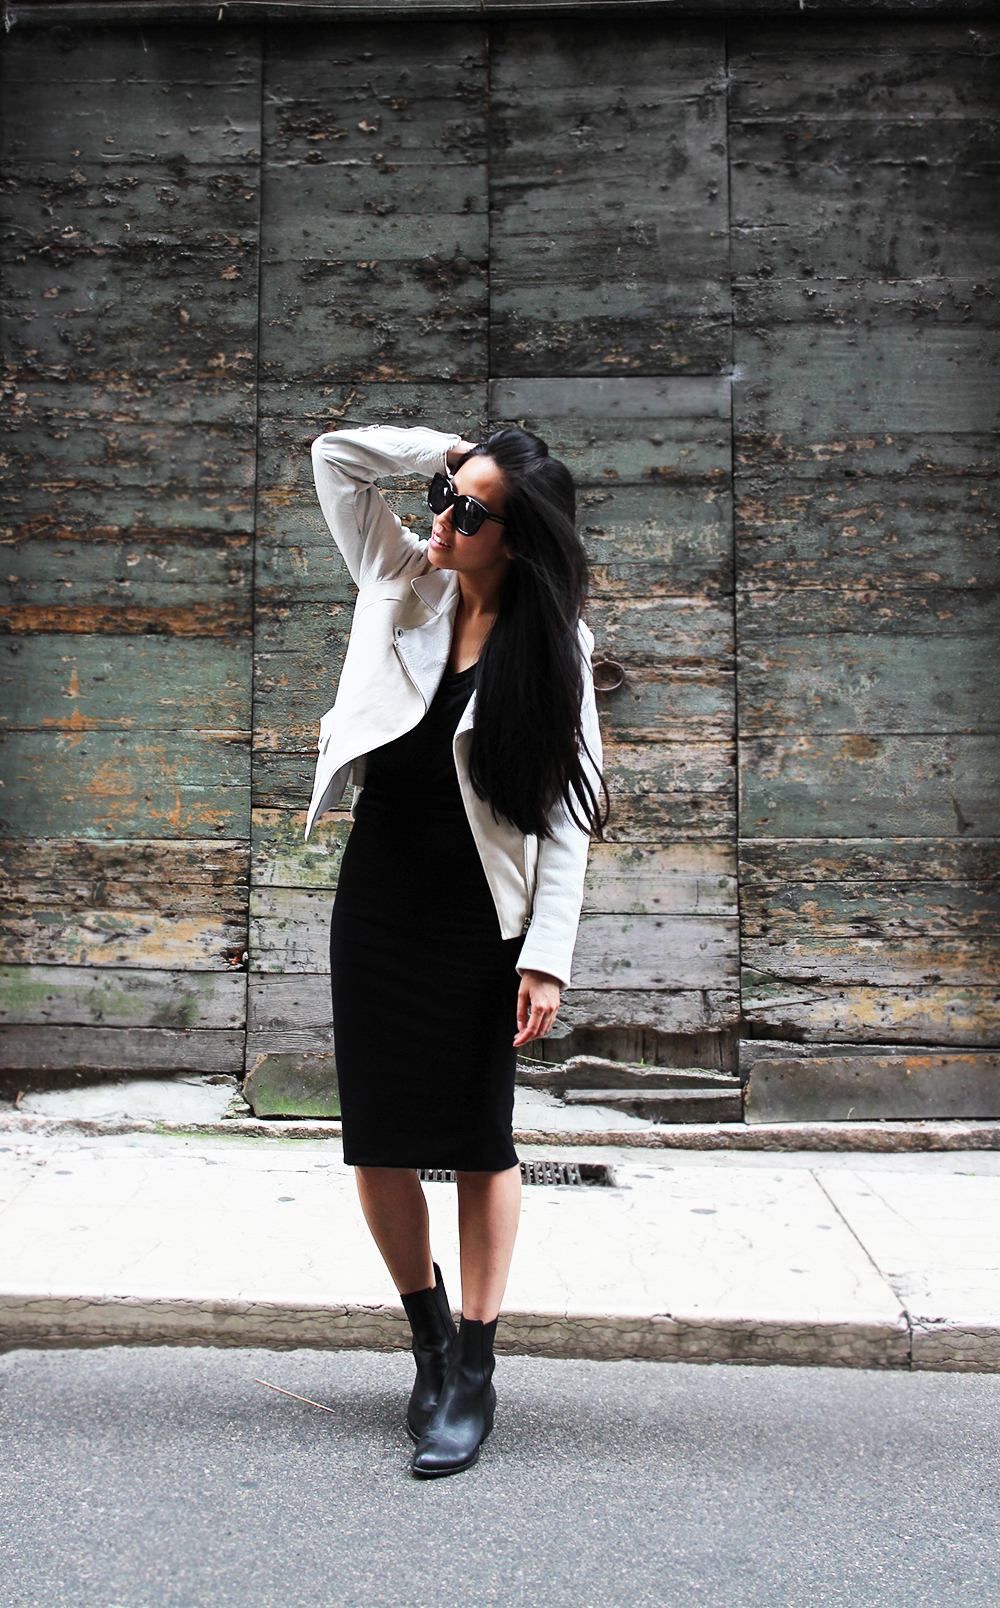 IHEARTALICE.DE – Fashion & Travel-Blog by Alice M. Huynh from Germany: Verona/Italy Travel & Food Diary –  All Black Everything Look wearing White Leatherjacket